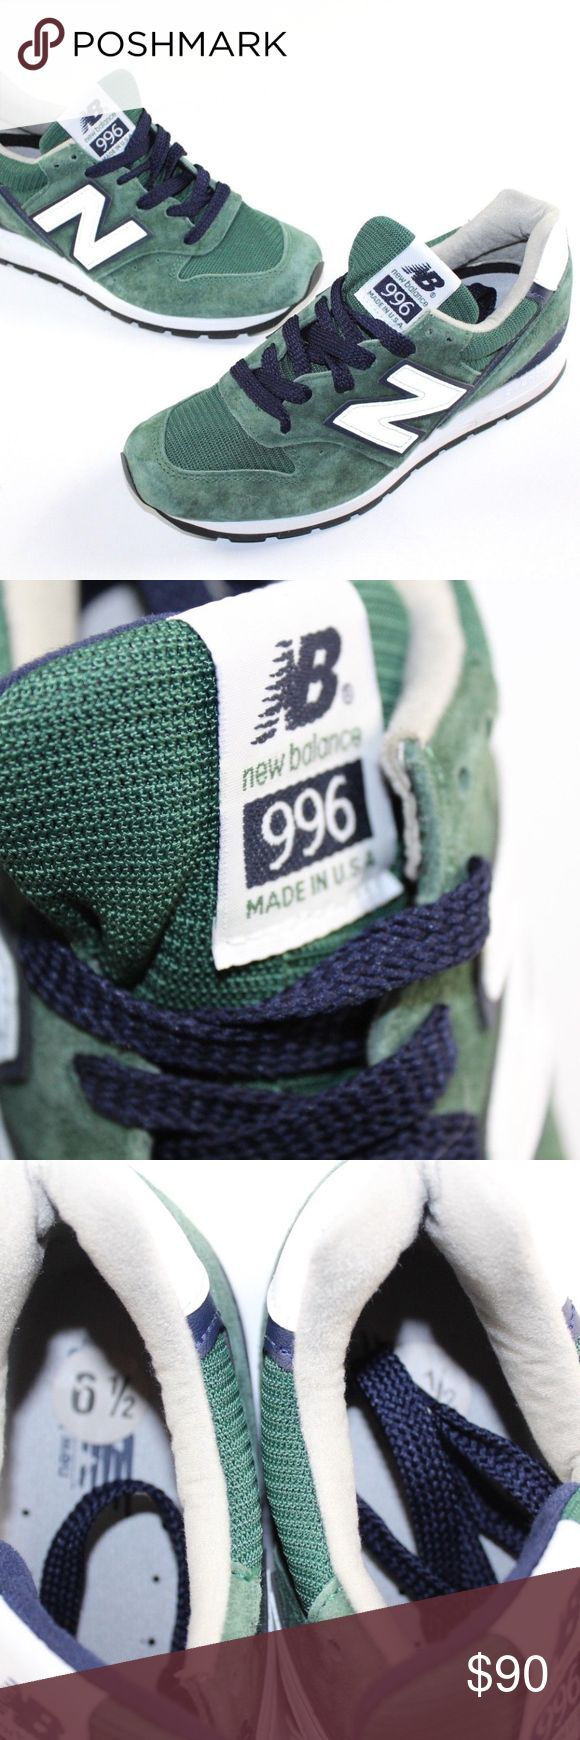 New New Balance 996 Heritage Suede Shoes St Pattys New Balance 996 Heritage Made in the USA Suede Sneakers  Shoes  New without box  Green  The size is US 6.5  Check out my other items in my store!  L4Bin New Balance Shoes Sneakers